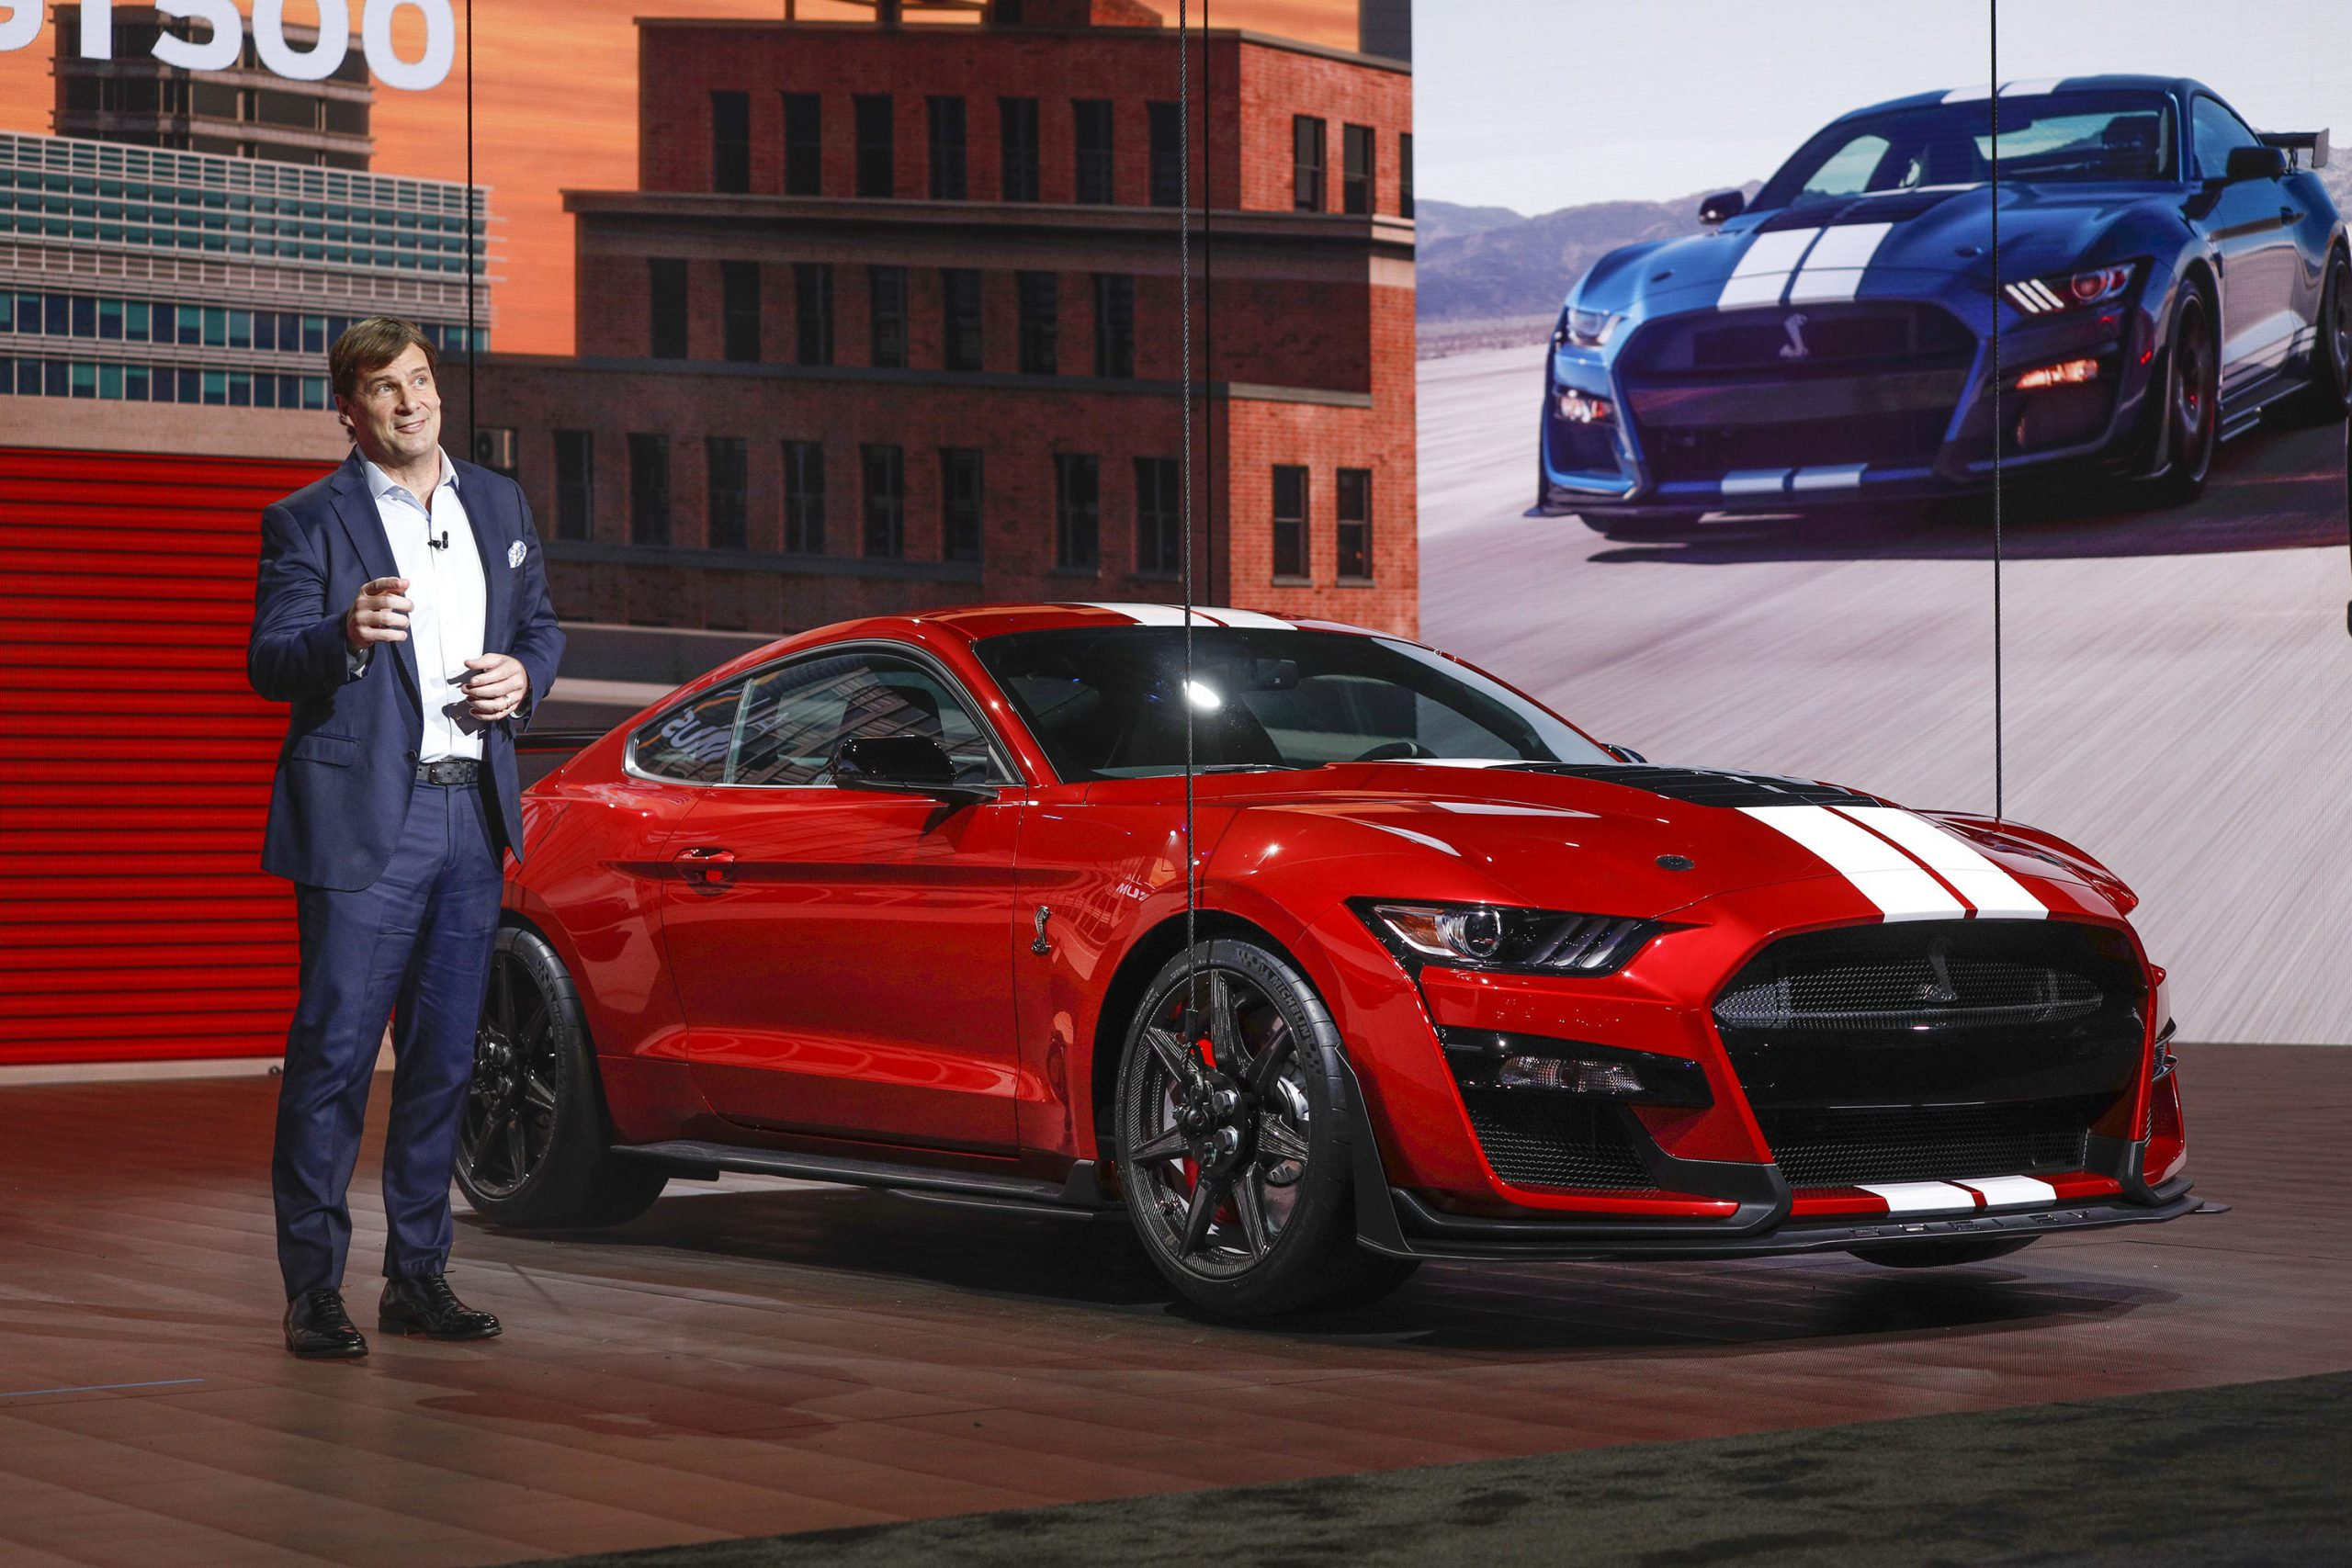 Ford COO Farley to receive $2.5 million in shares if not selected as next CEO